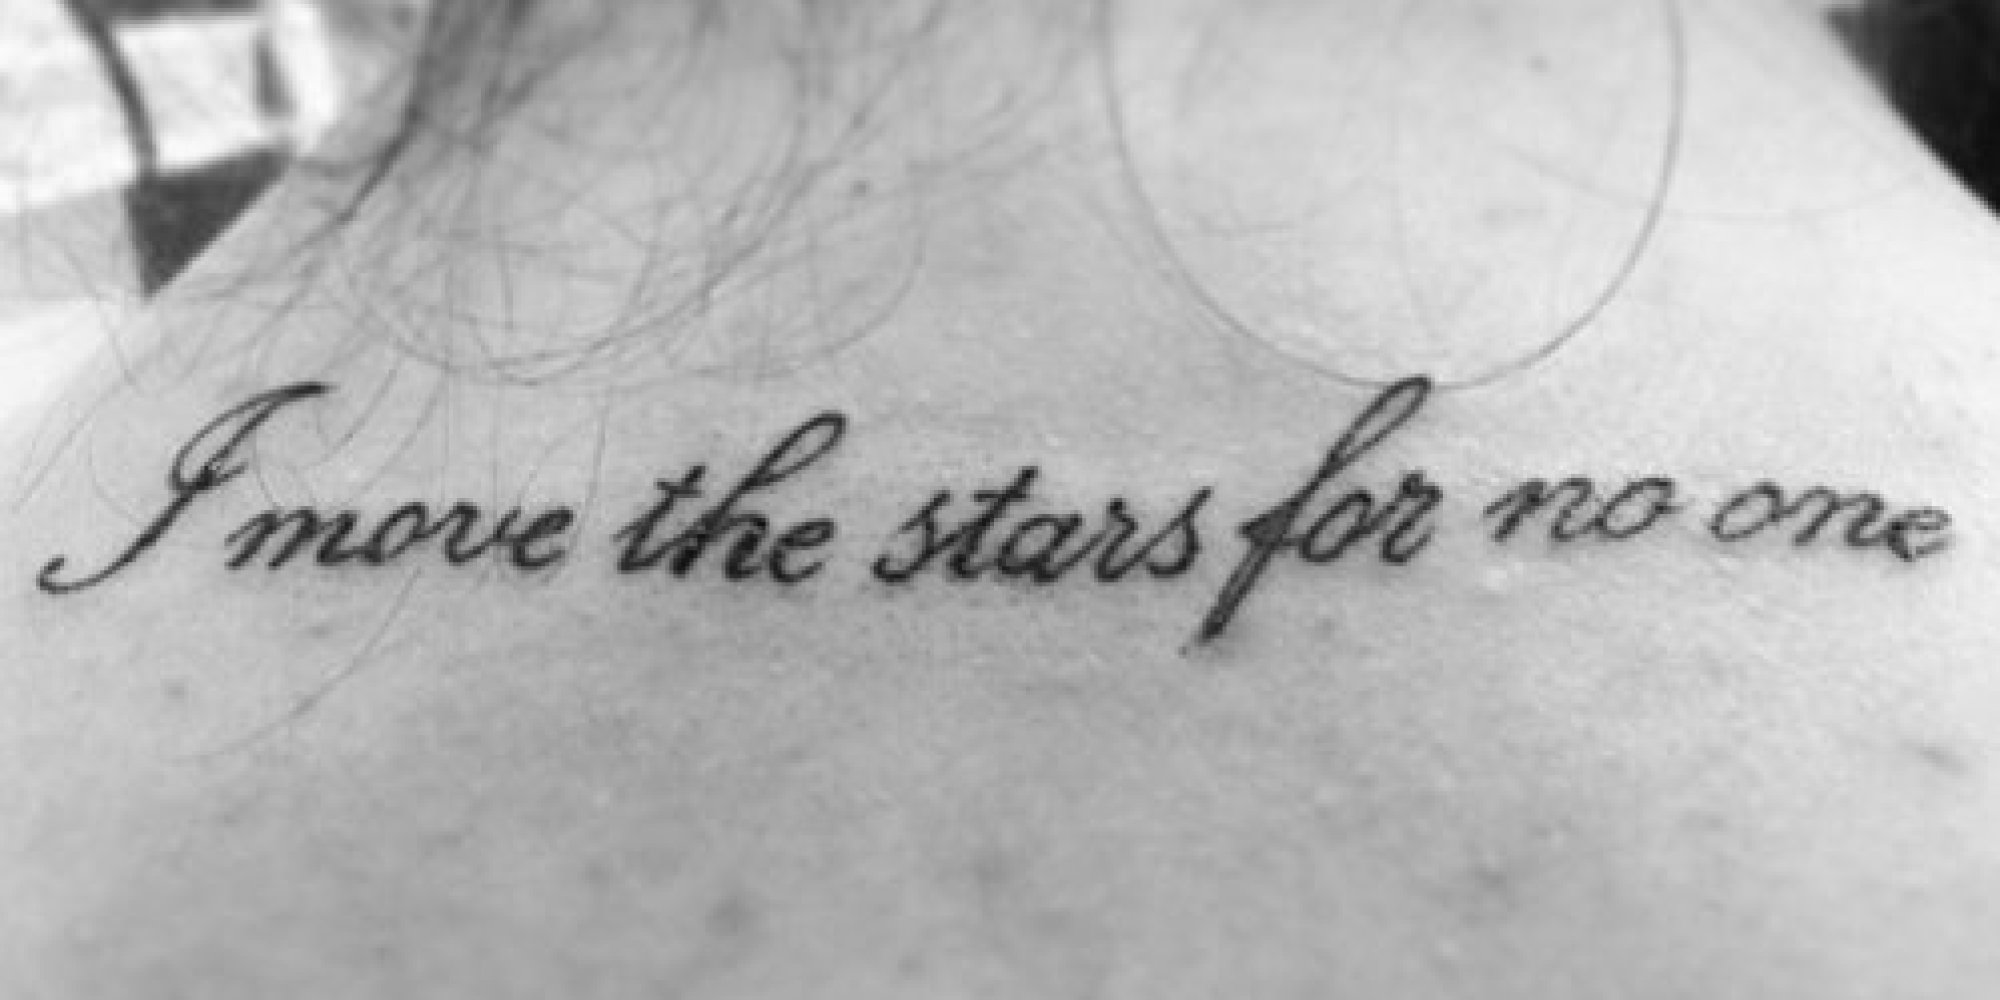 Tattoos Quotes About Parents Tattoo Quotes 11 Ways to Get